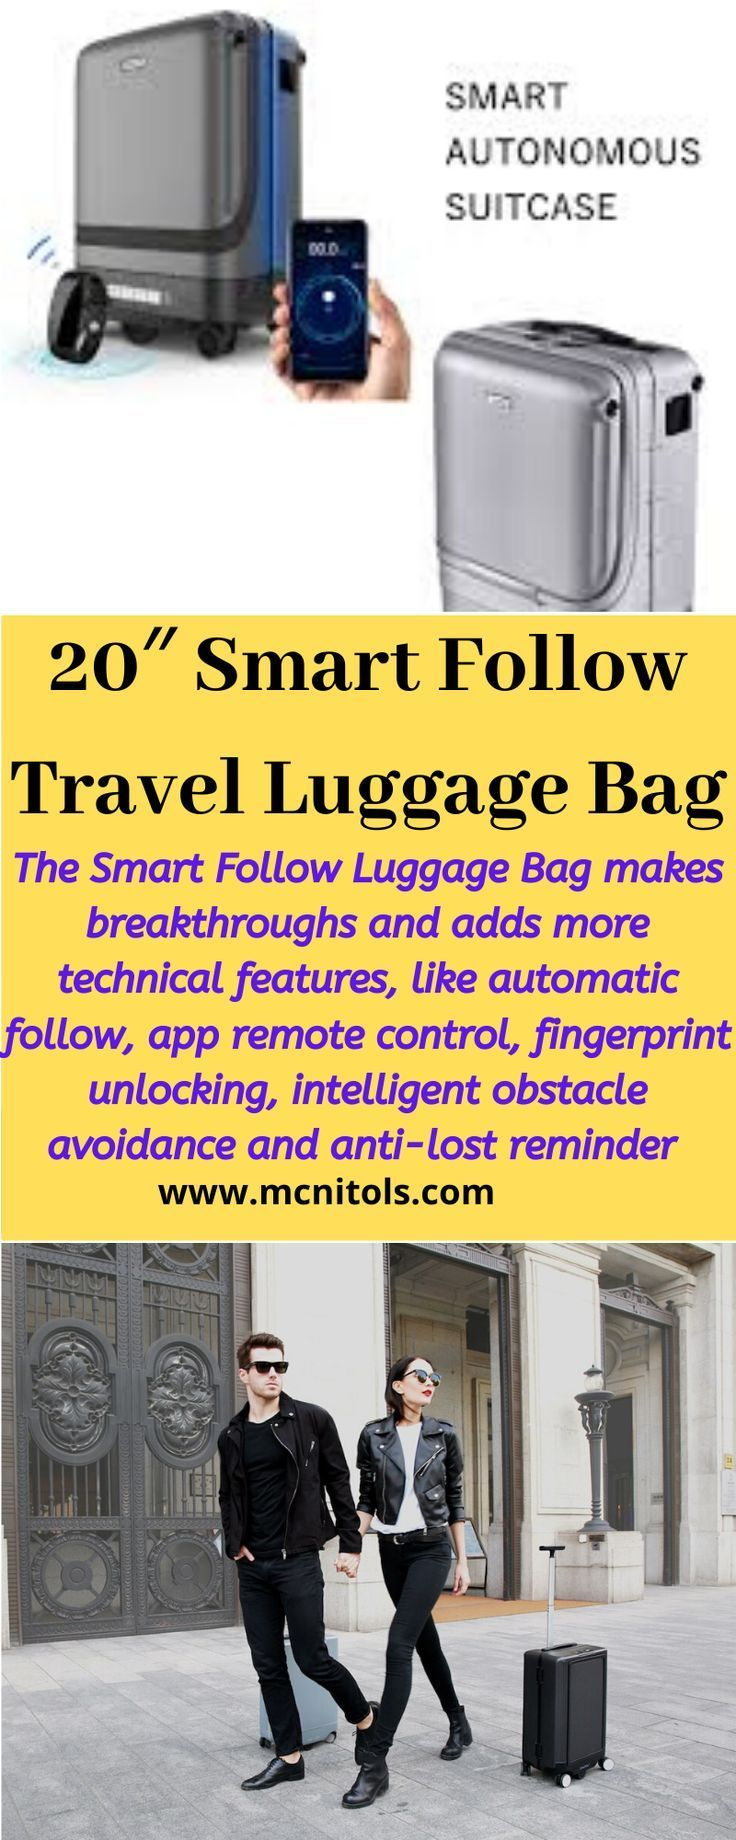 The Smart Follow Luggage Bag makes breakthroughs and adds more technical features, like automatic follow, app remote control, fingerprint unlocking, intelligent obstacle avoidance, anti-lost reminder and so on. Equipped with UWB high-accuracy location technology, as long as the bracelet is worn, the Smart Follow Luggage Bag will follow you. #luggage #travel #fashion #bags #bag #suitcase #holiday #smartluggagebag #followluggagebag #travelbag #shopping #travelling #travelgram #luggagebag